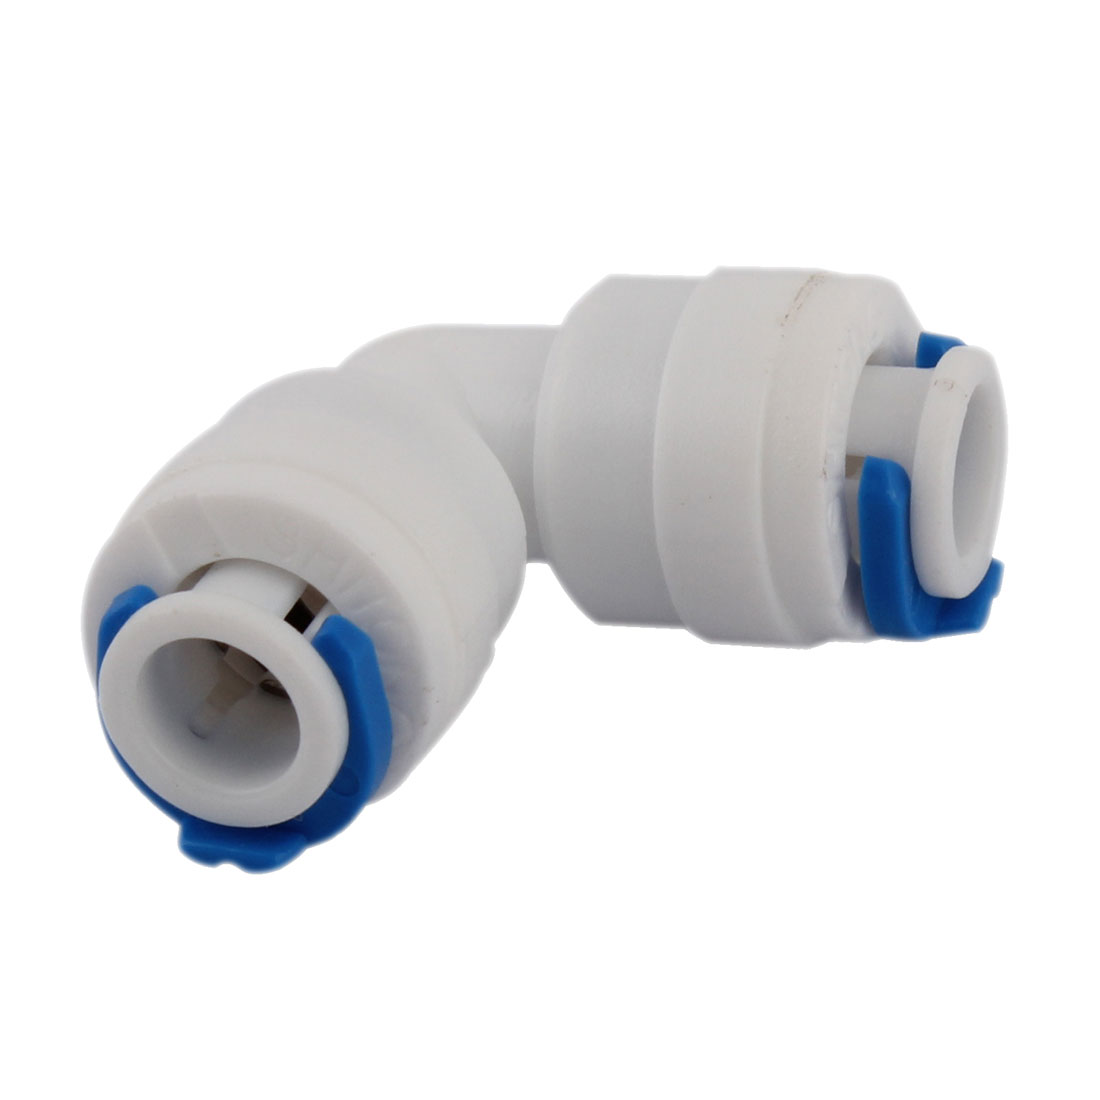 10mm Hole Diameter Plastic Water Pipe Tube Filter Quick Fitting Connector White